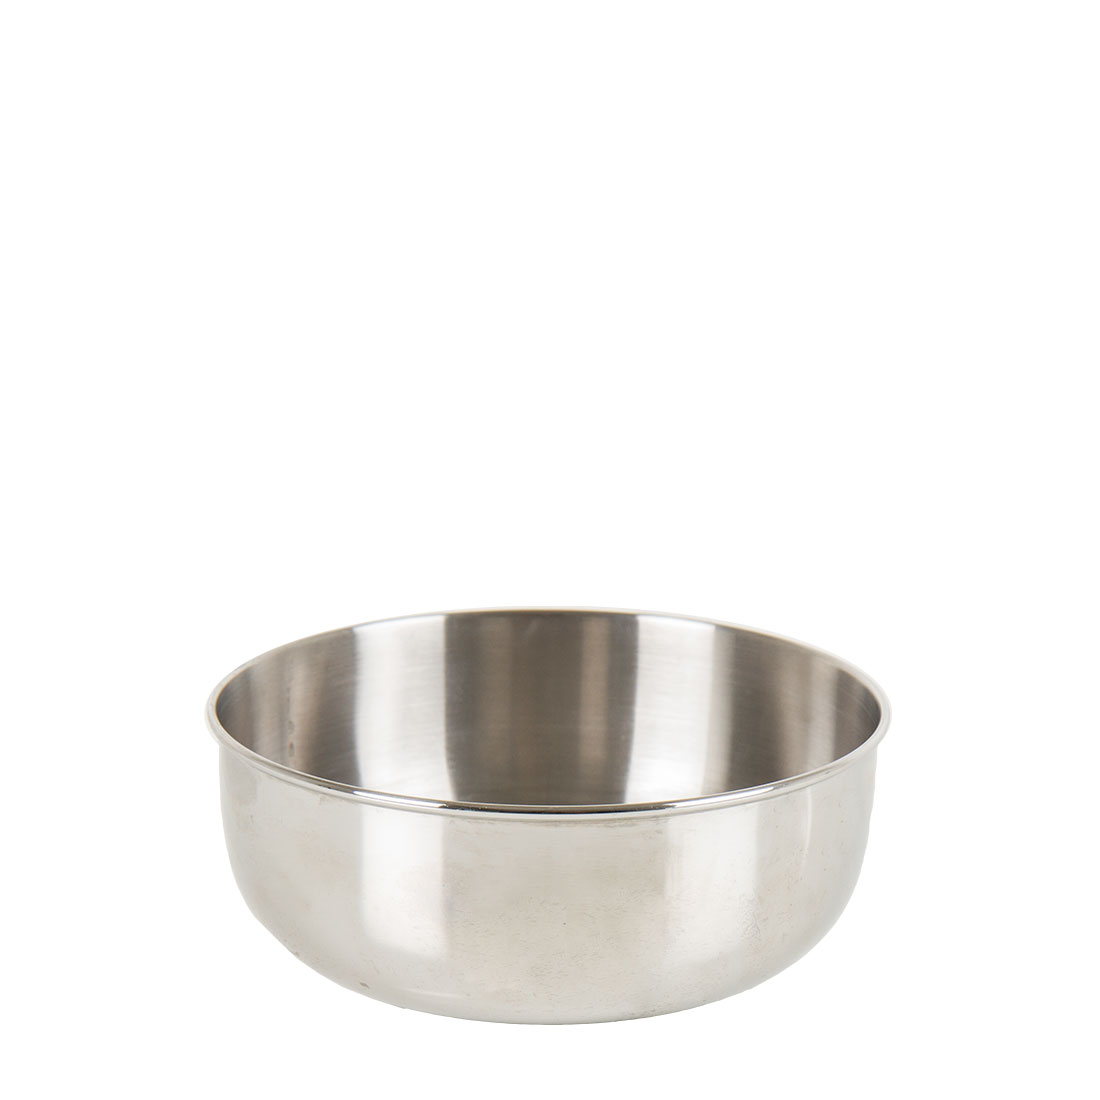 Stainless Steel Camping Bowl